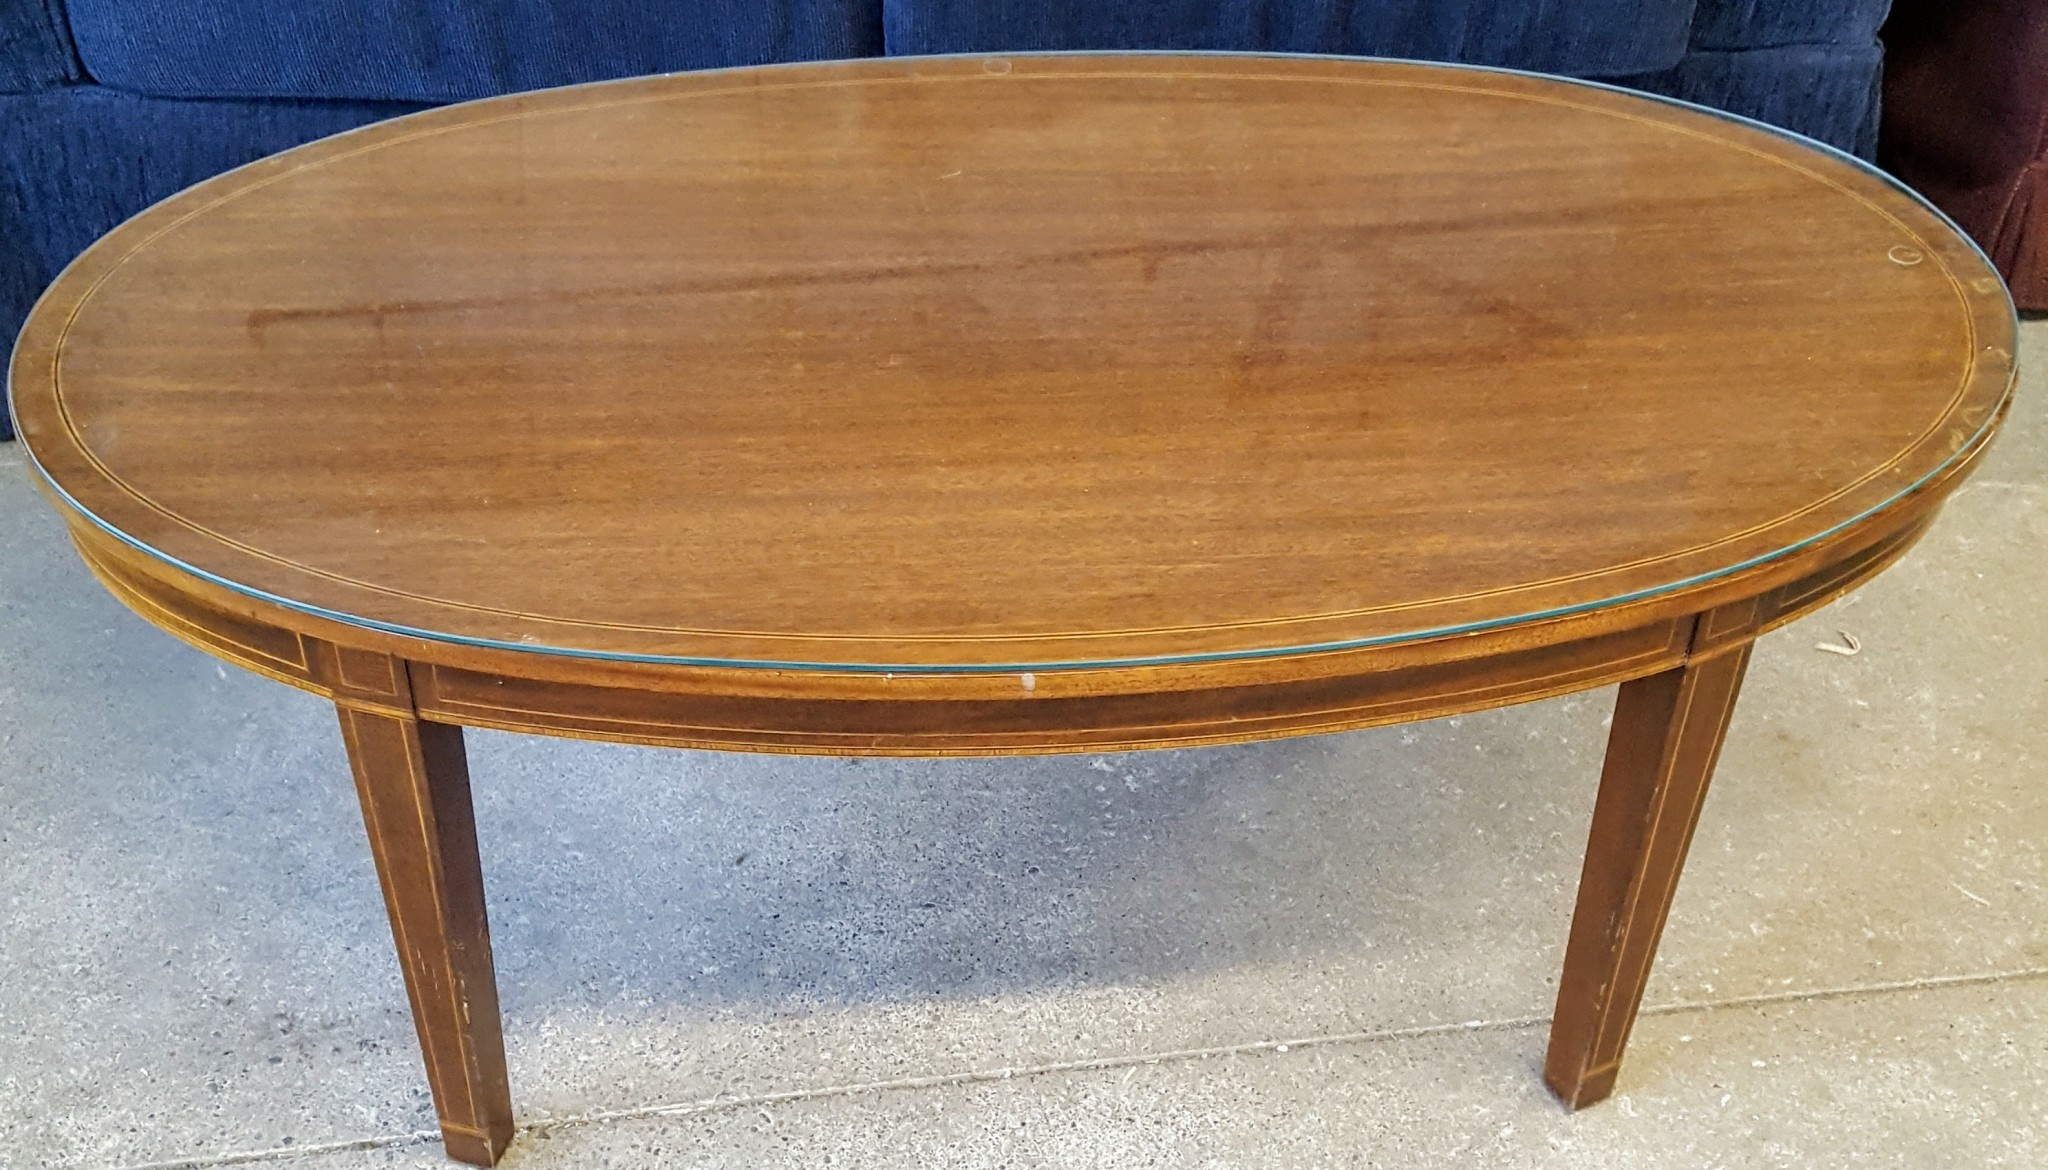 Picture of: Oval Glass Top Coffee Table Habitat For Humanity Restore